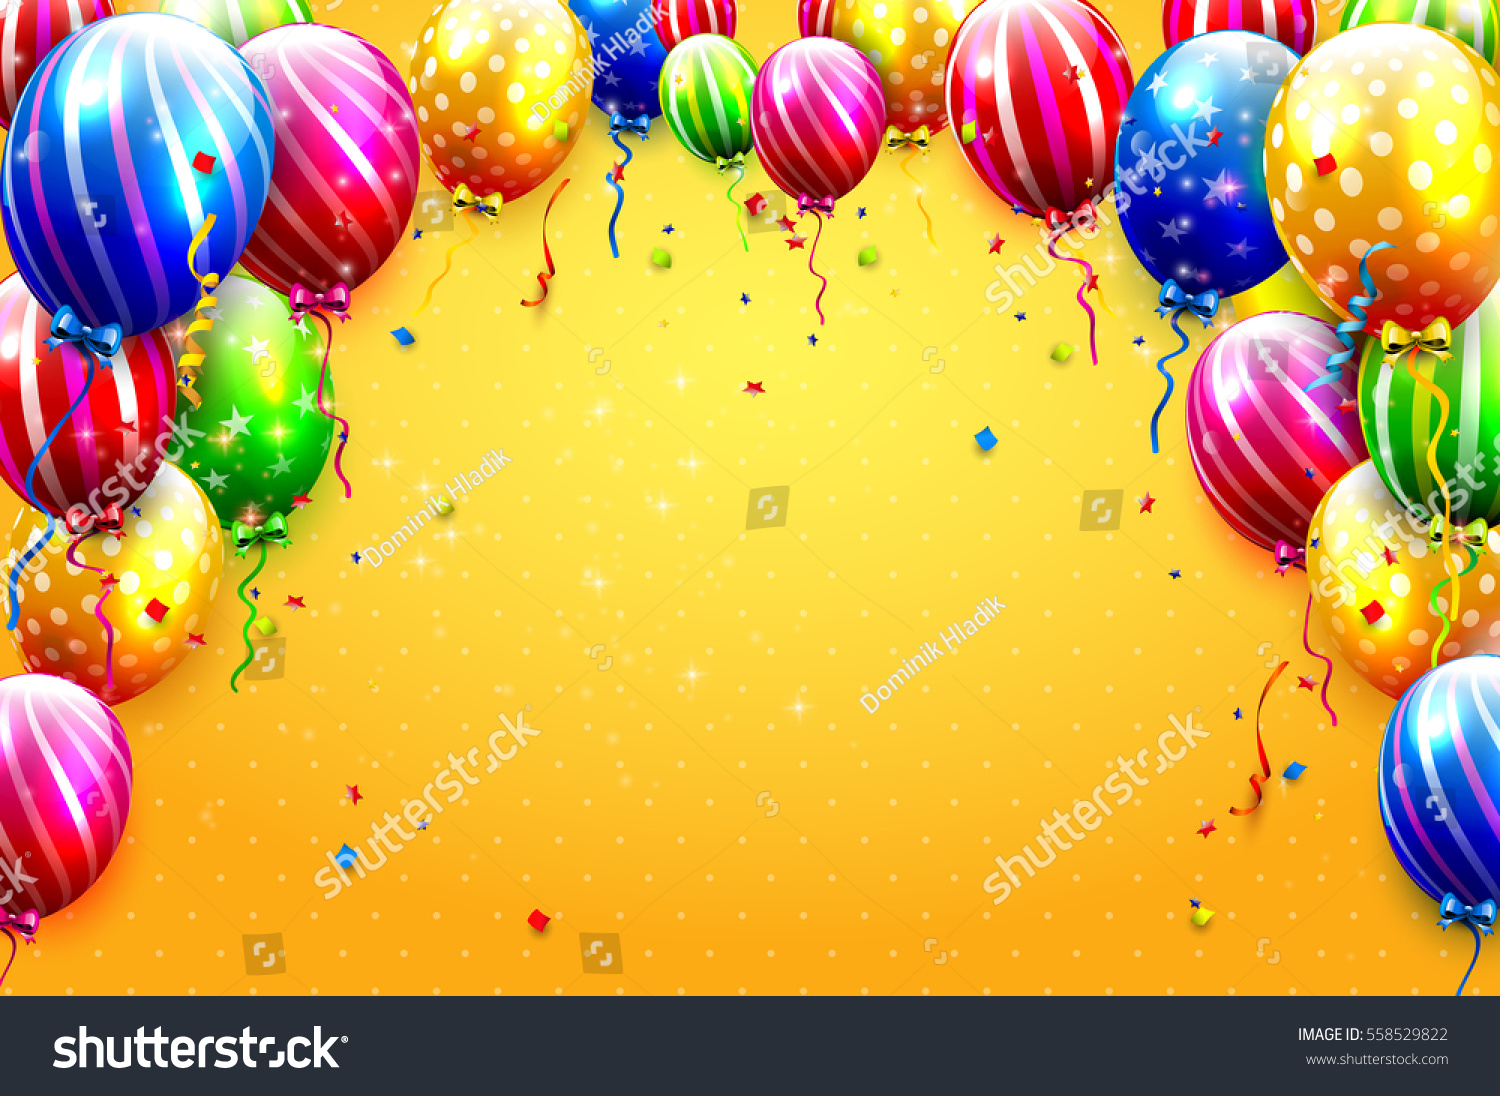 Luxury Party Balloons And Confetti On Orange Background Or Birthday Invitation Template